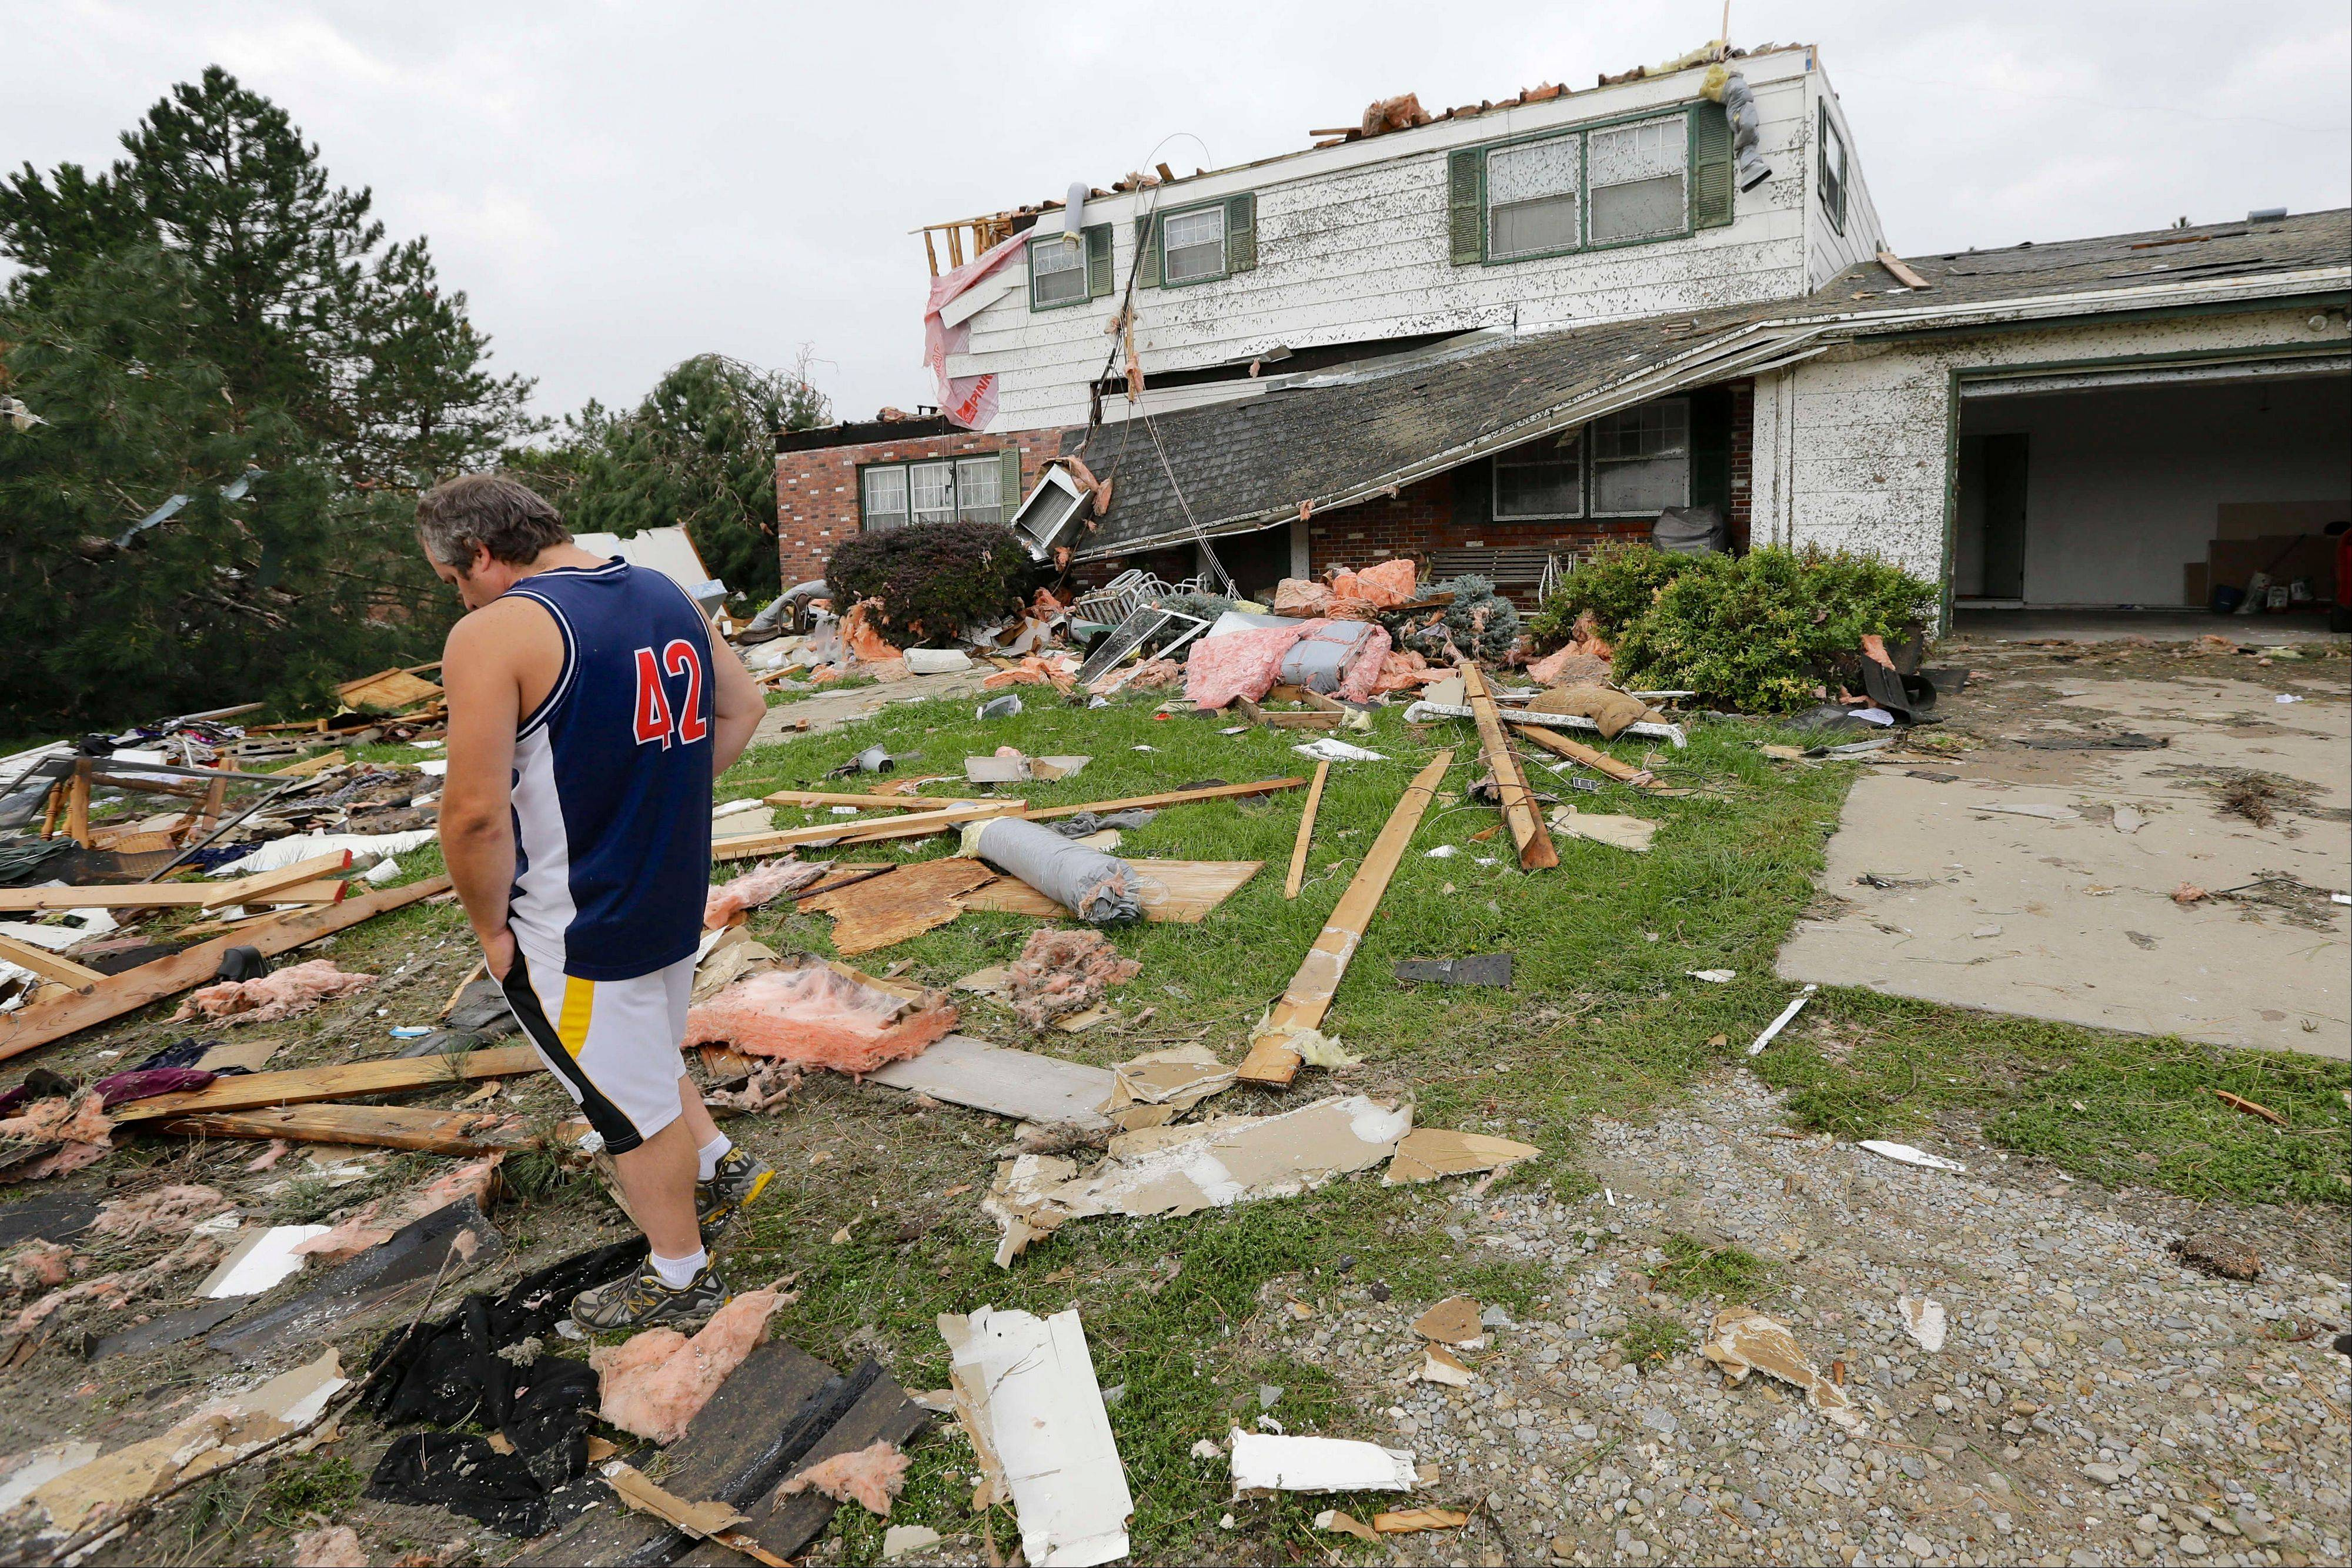 Travis Randall walks through the debris-strewn yard of his parent�s home in Hickman, Neb., Friday, Oct. 4, 2013, after it was struck by a tornado. Powerful storms crawled into the Midwest on Friday, dumping heavy snow in South Dakota, spawning a tornado in Nebraska and threatening dangerous thunderstorms from Oklahoma to Wisconsin.